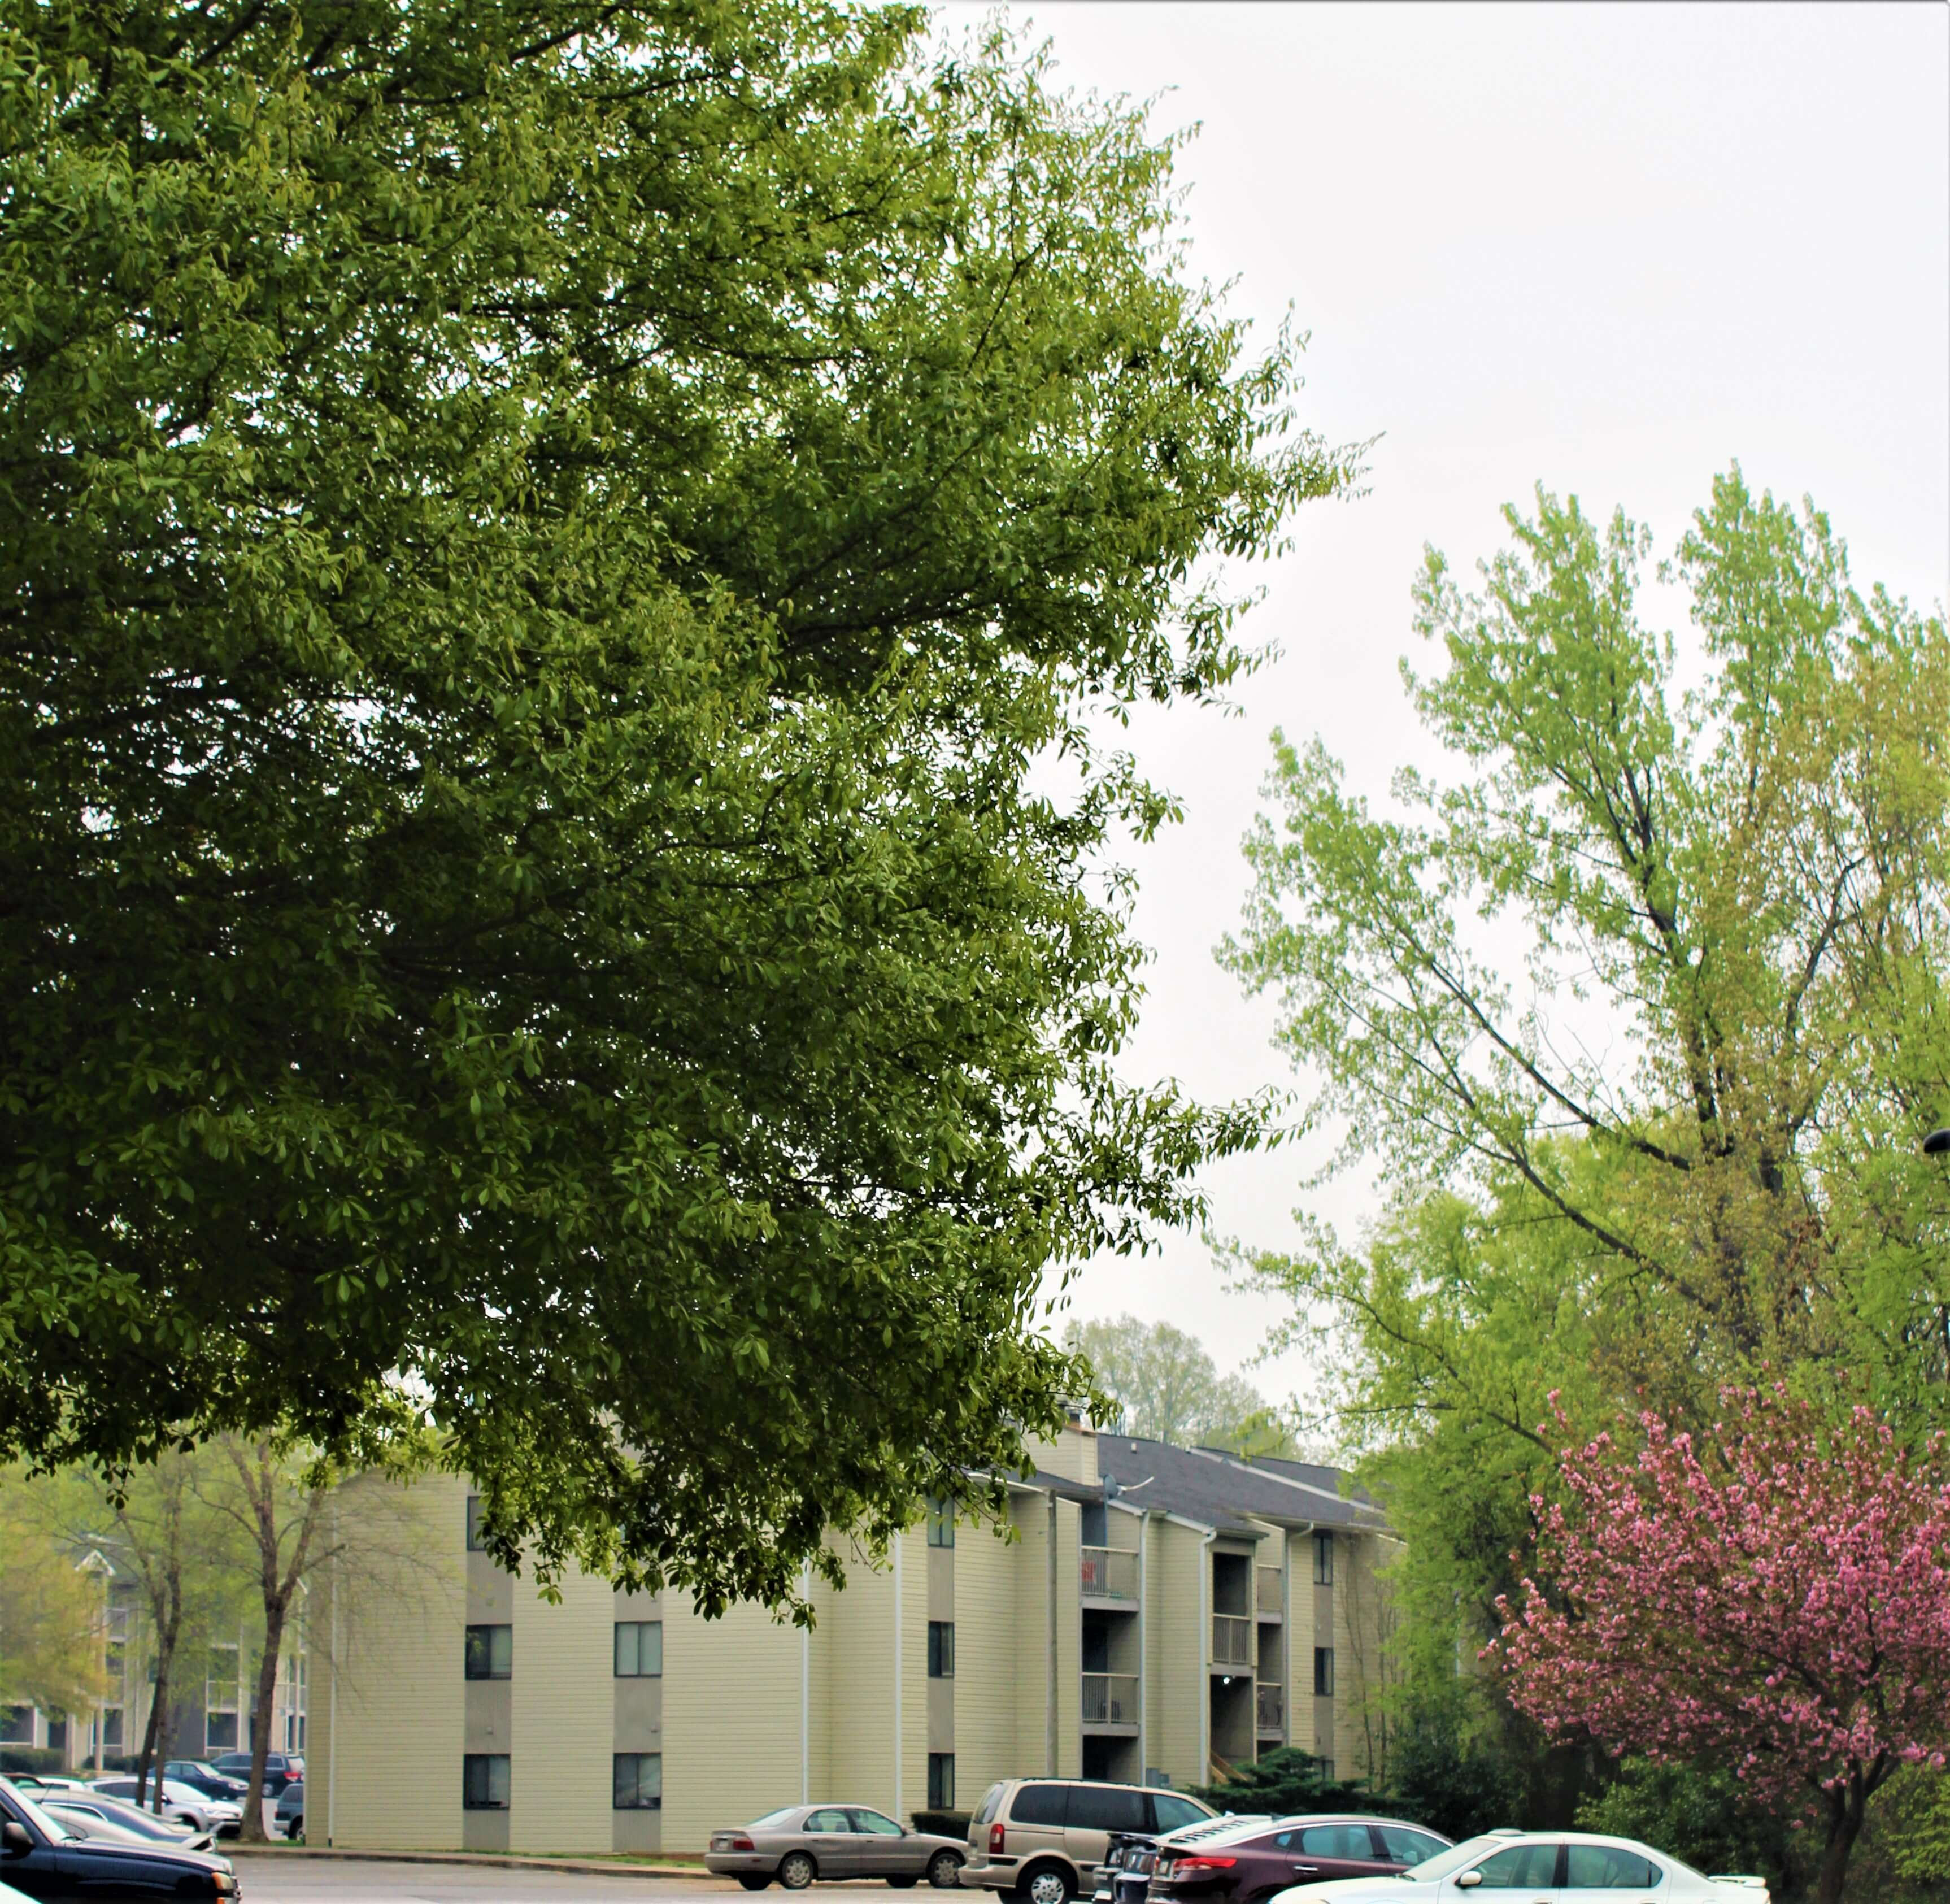 Stone Haven Pointe Apartments, Rock Hill, SC (803)981-7600